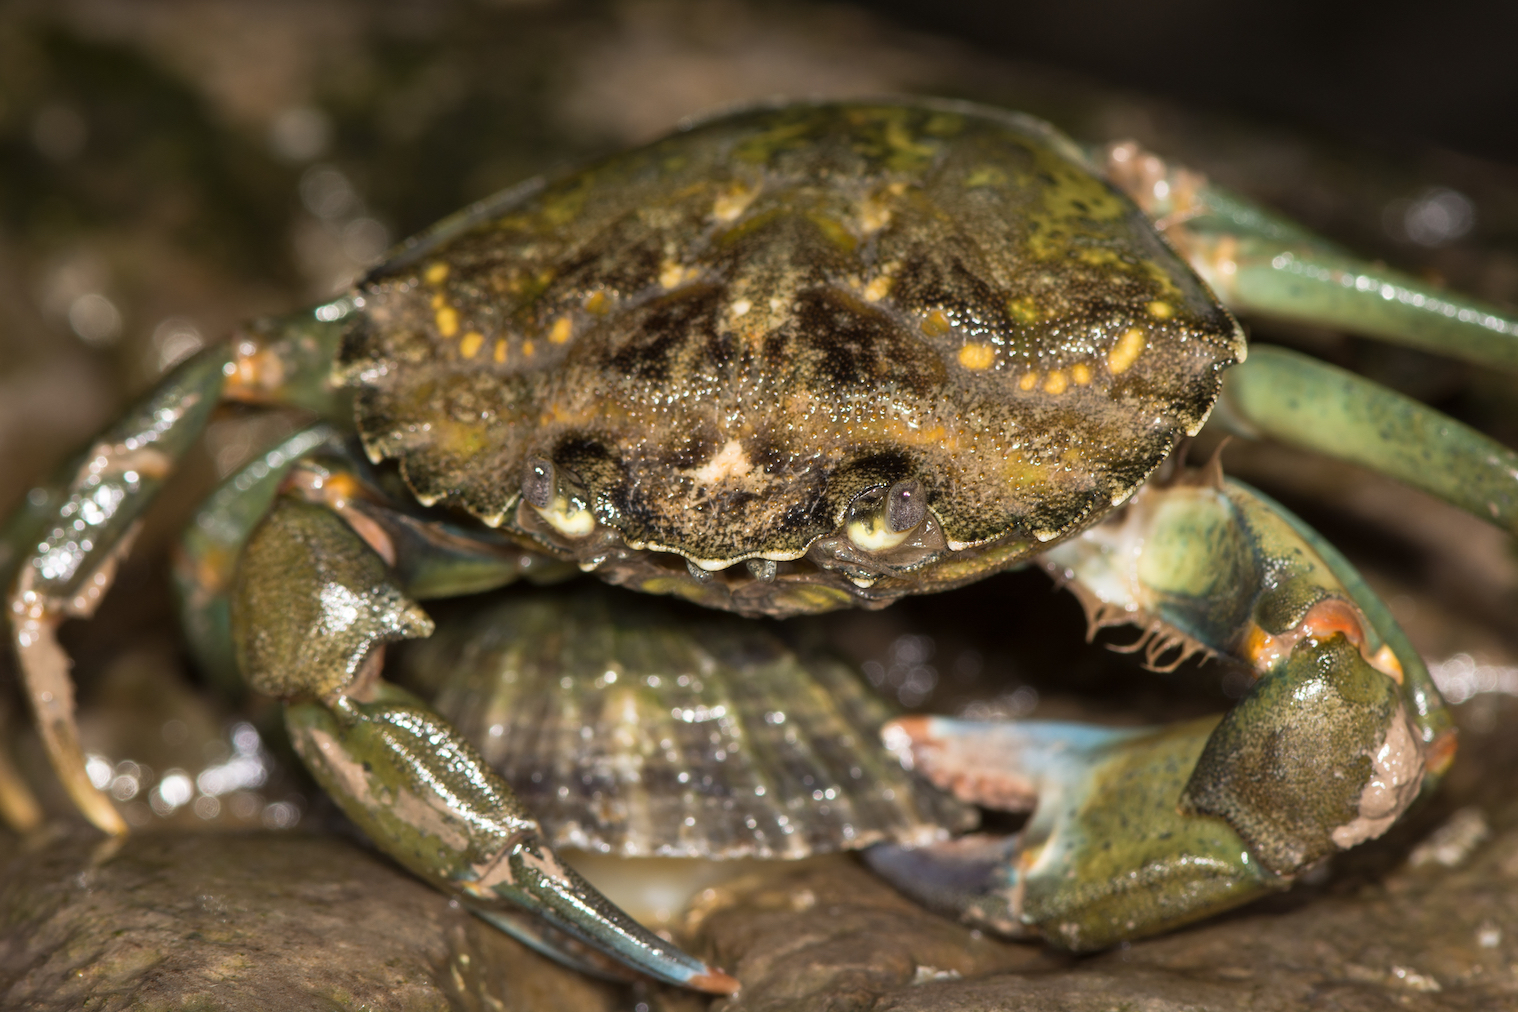 The North Sea native green shore crab is a cannibalistic predator that can survive extremely harsh conditions like low oxygen.